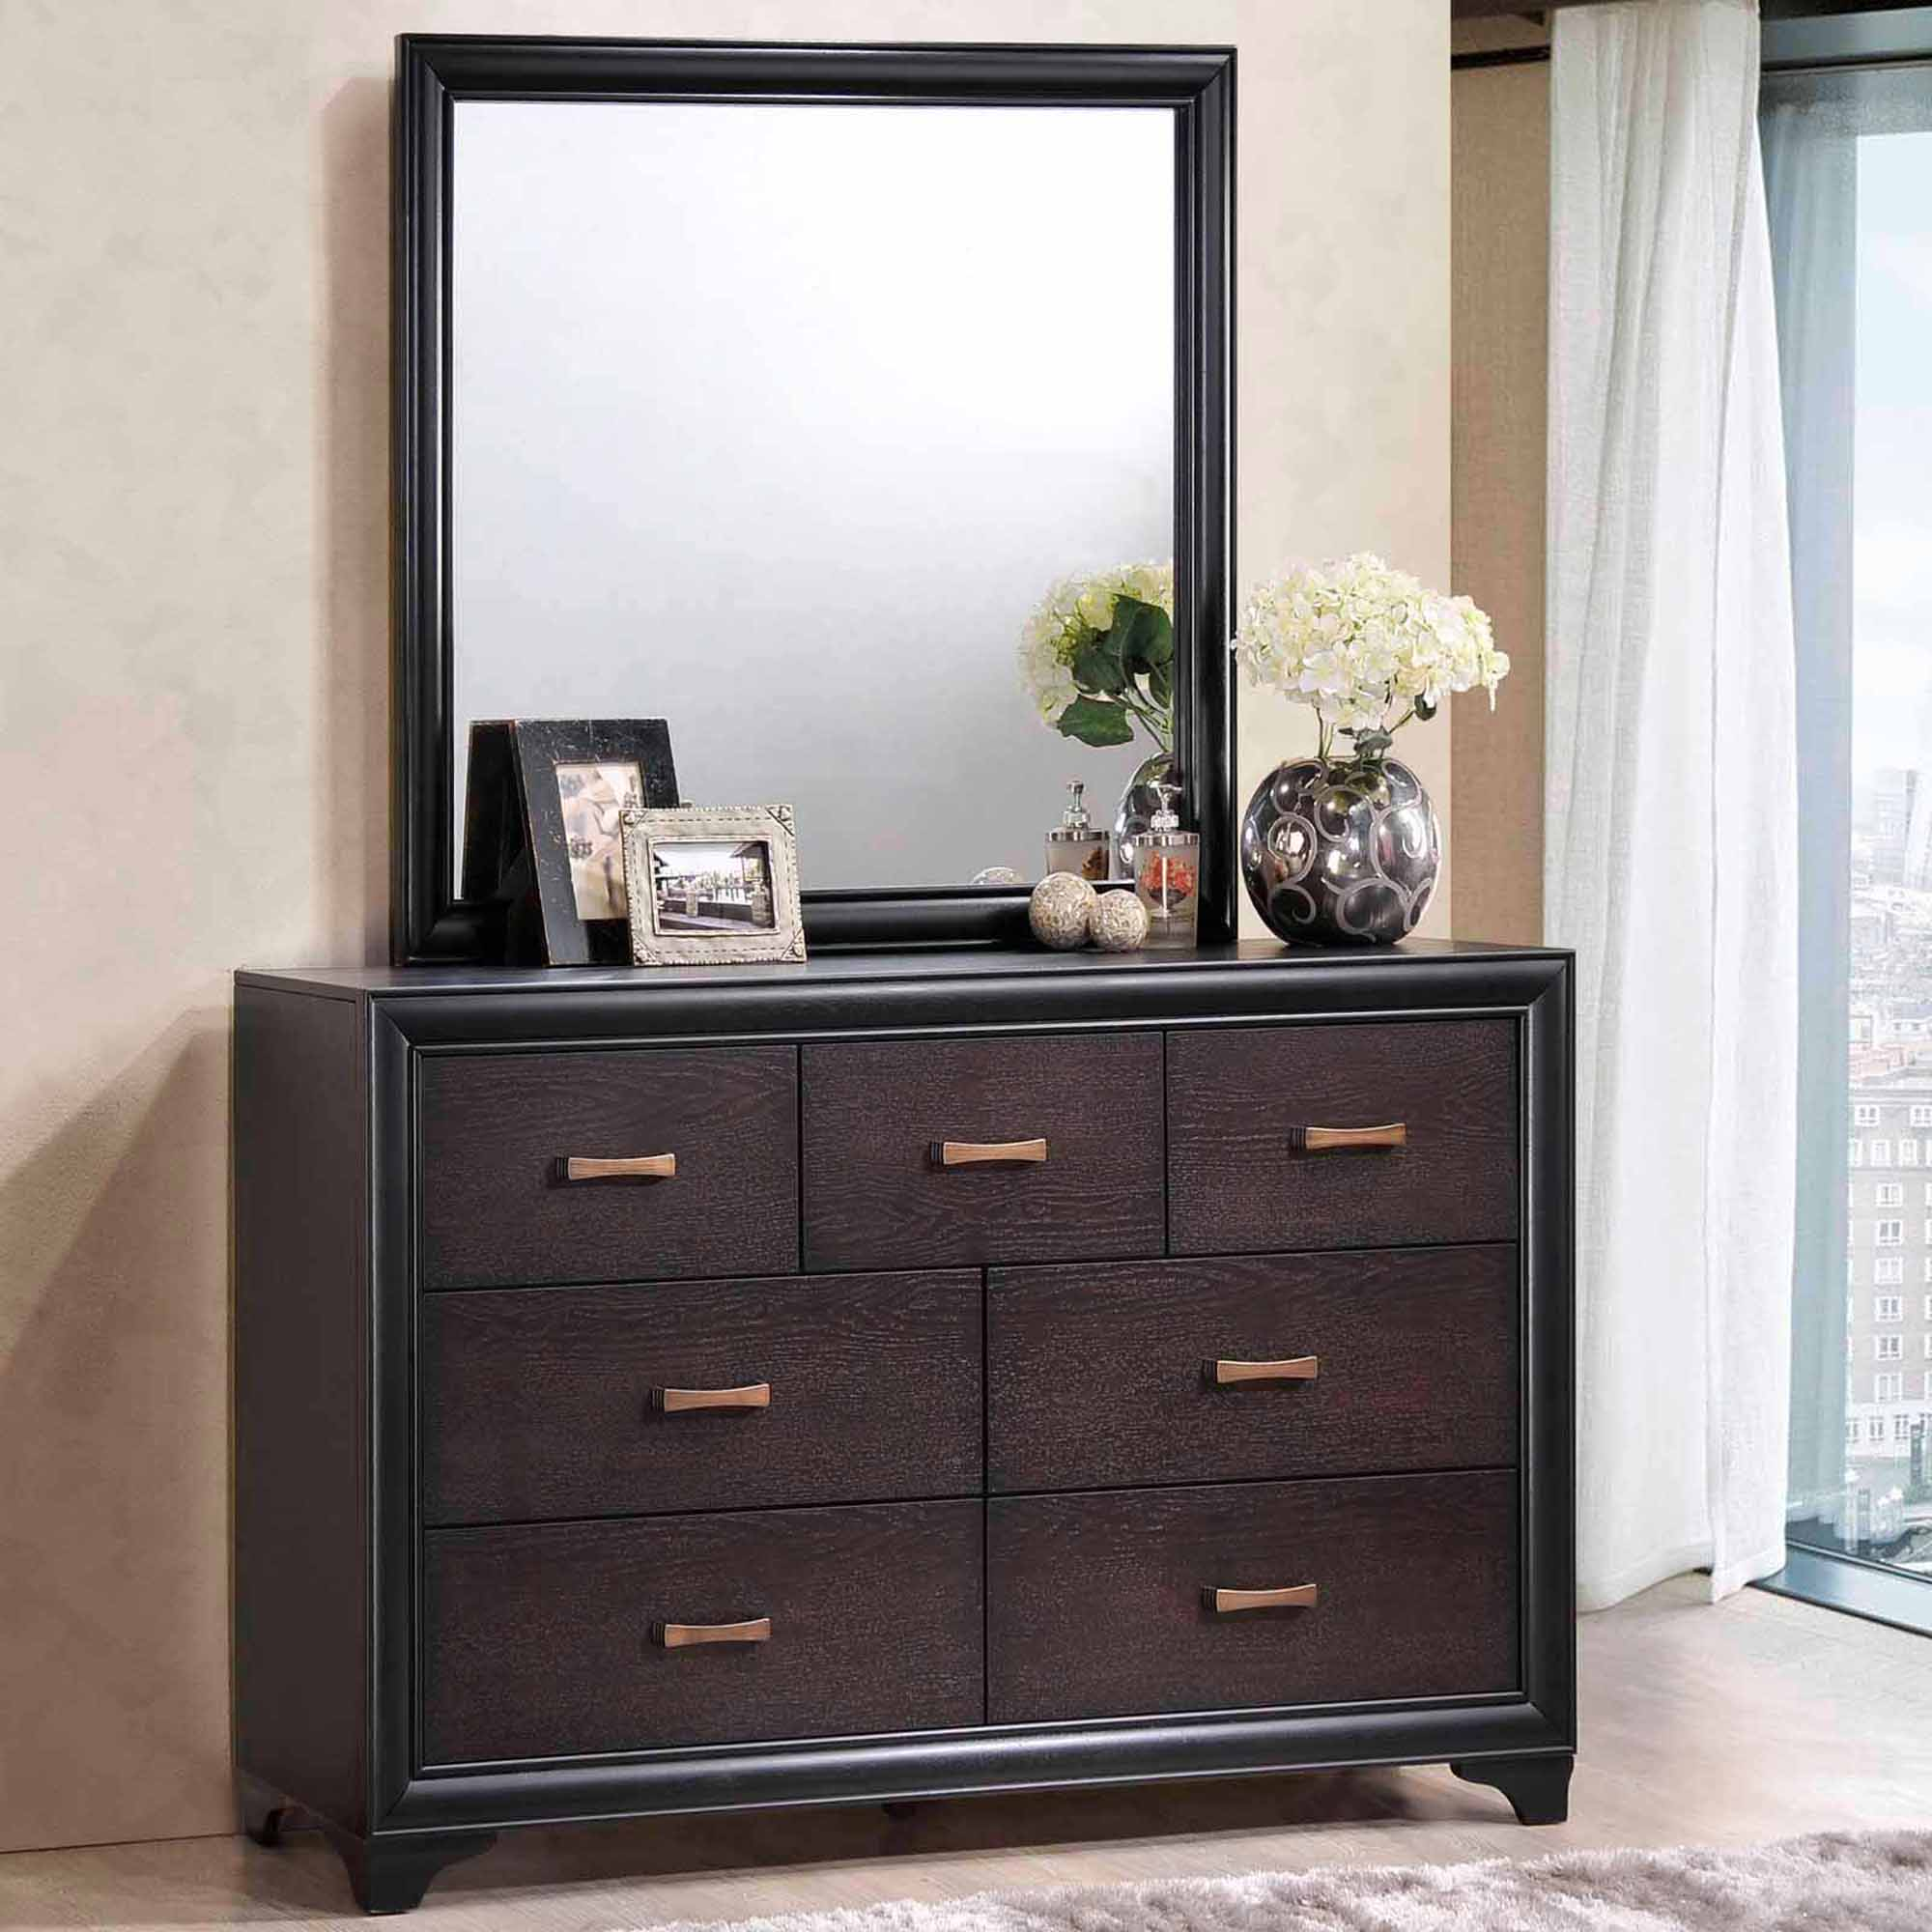 Modway Madison 7-Drawer Dresser and Mirror Set in Walnut